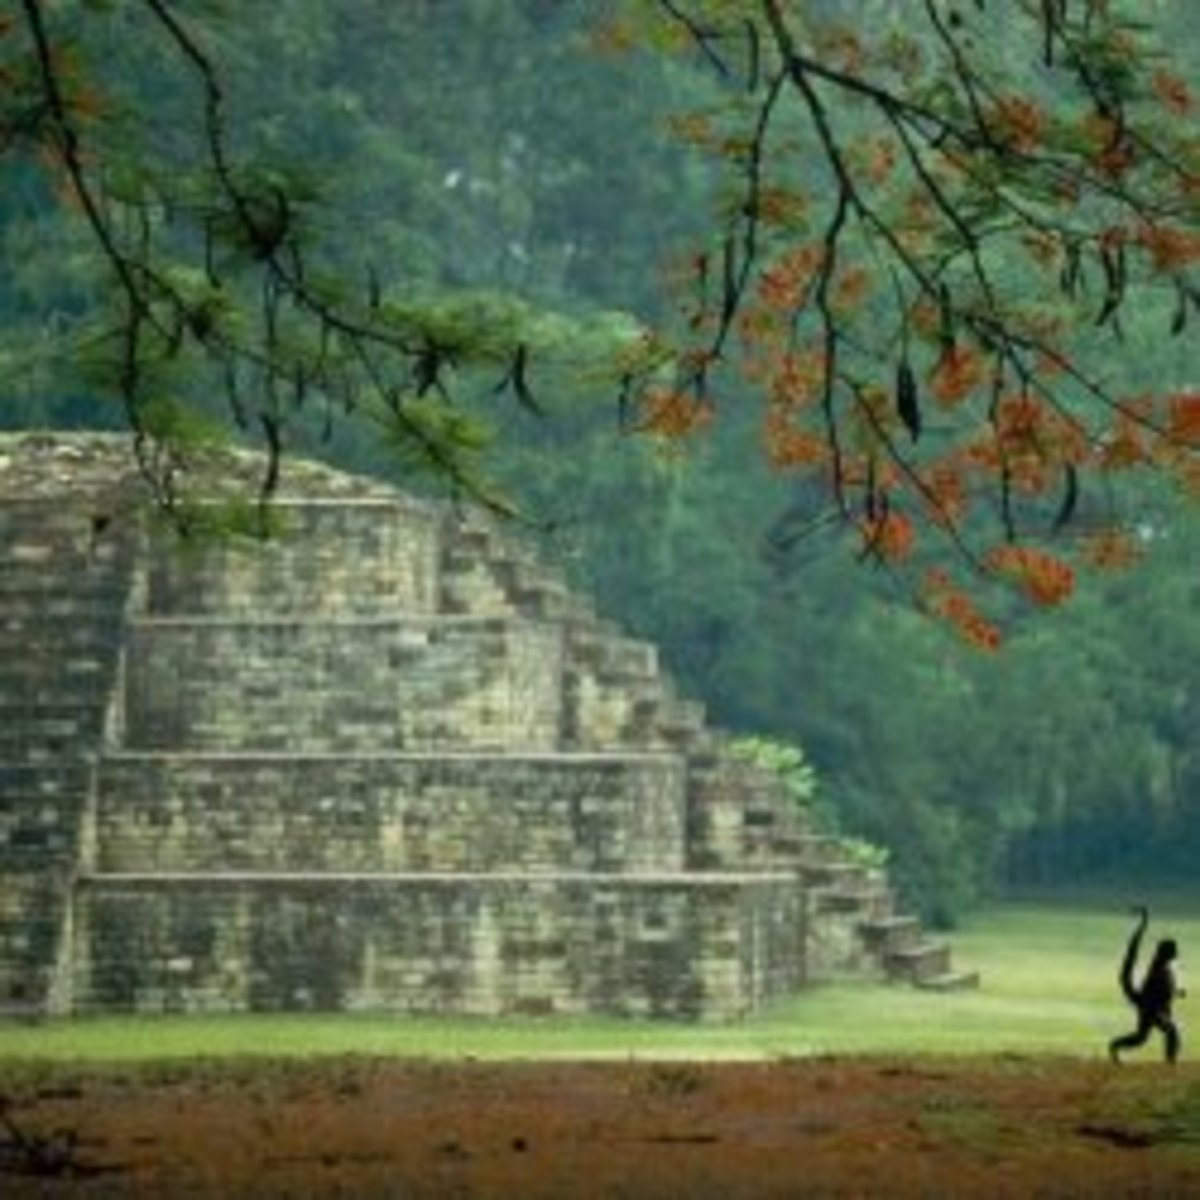 Image credit: http://travel.nationalgeographic.com/travel/countries/honduras-guide/